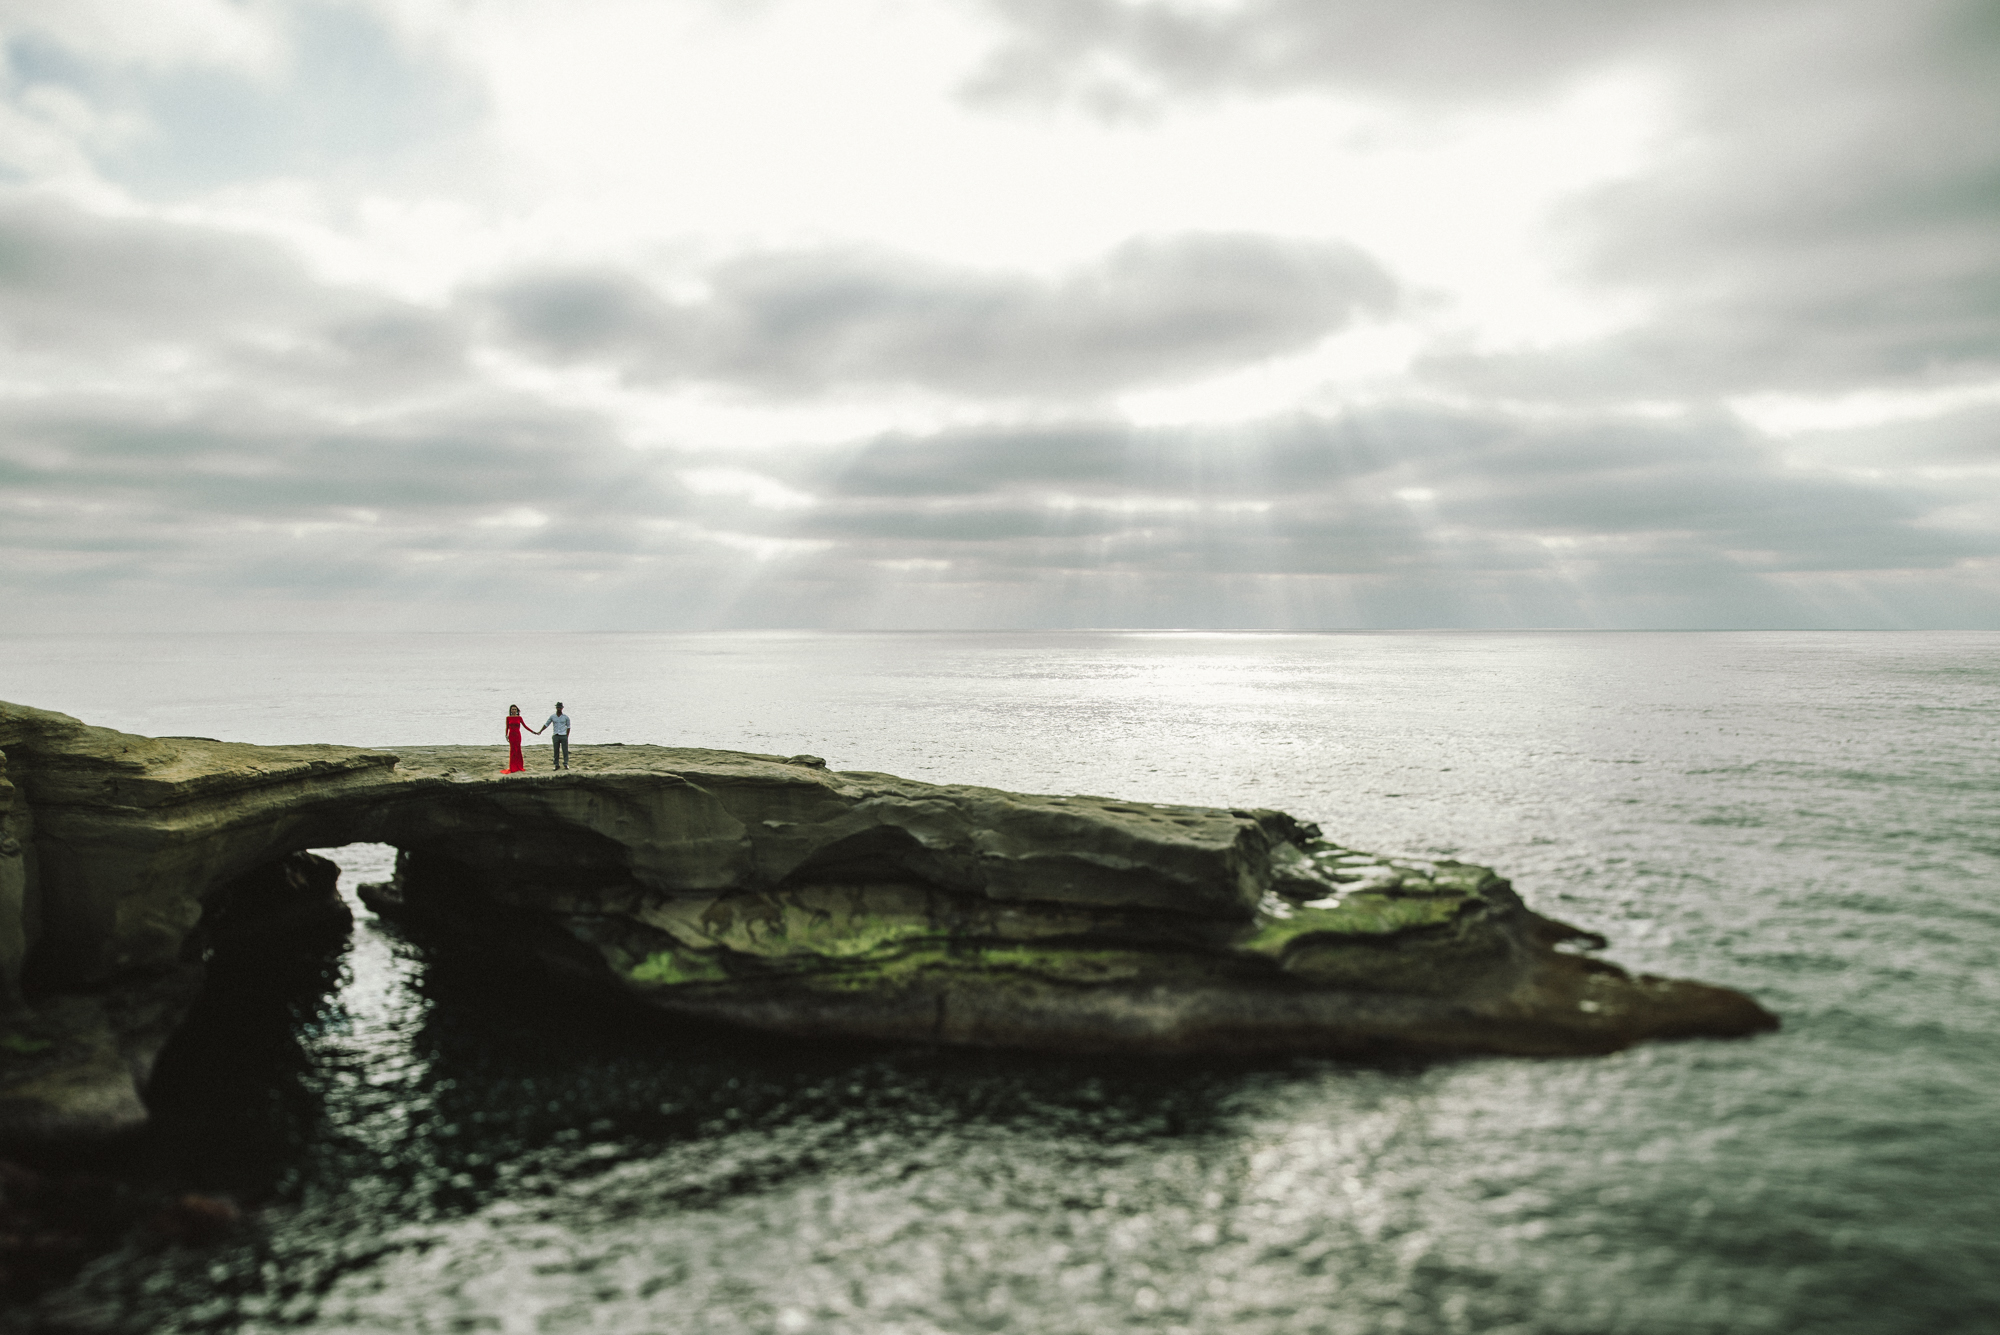 Isaiah & Taylor Photography - Los Angeles - Destination Wedding Photographers - San Diego Sunset Cliffs Beach Adventure Engagement-12.jpg